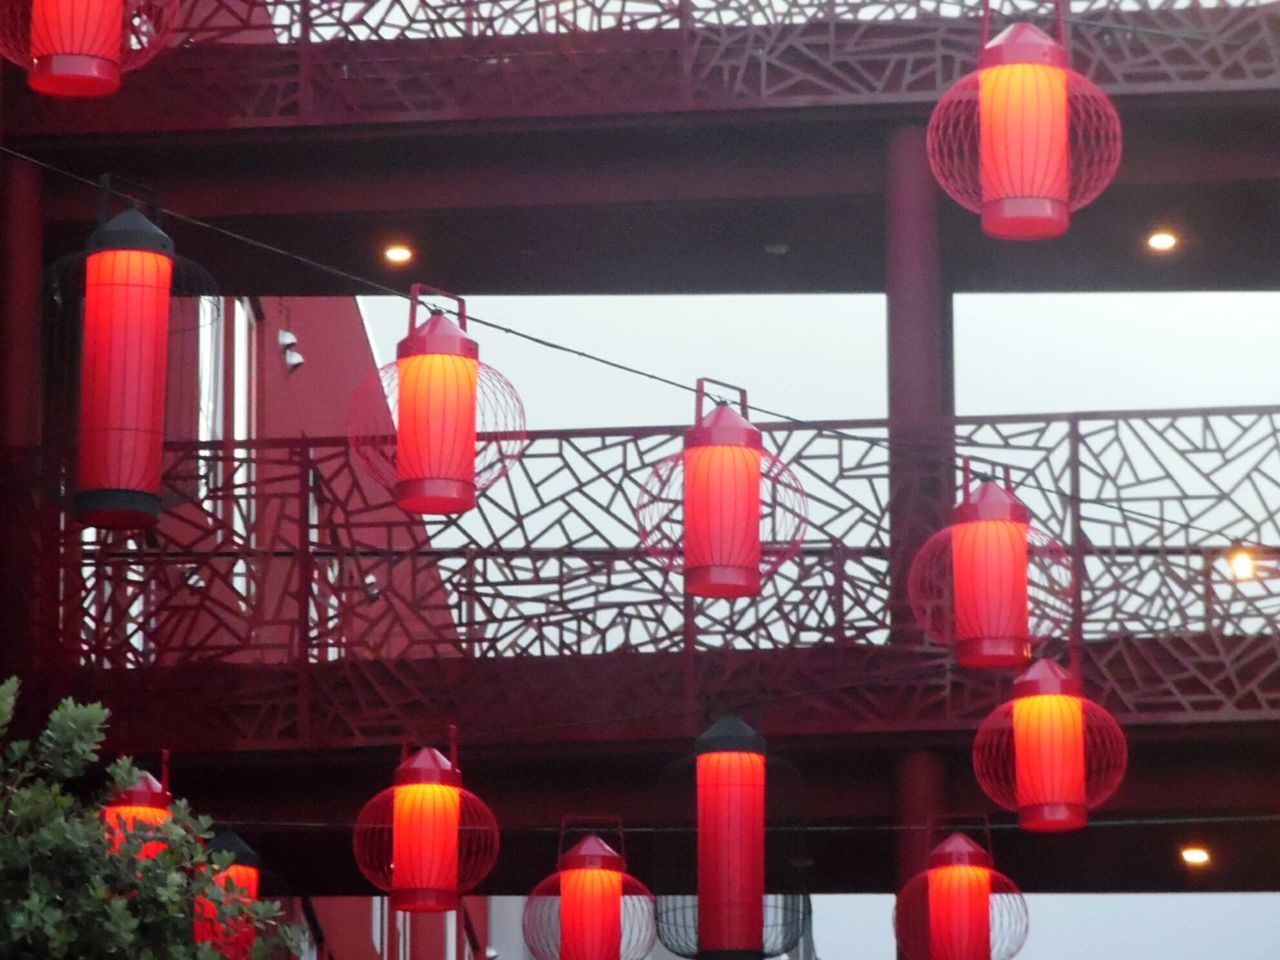 lighting equipment, lantern, hanging, illuminated, chinese lantern, low angle view, paper lantern, no people, red, built structure, architecture, chinese lantern festival, indoors, day, close-up